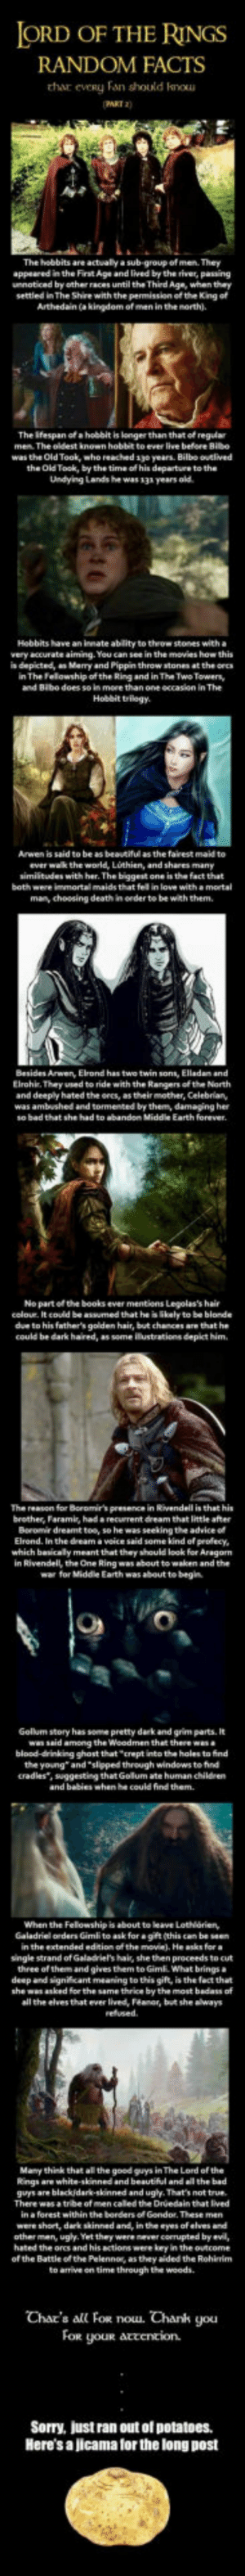 "Advice, Bad, and Beautiful: ORD OF THE RINGS  RANDOM FACTS  thar  eveRy Fan should kou  AKT 2)  The hobbits are actually a sub-group of men. They  appeared in the First Age and lived by the river, pawing  unnoticed by other races until the Third Age, when they  settled in The Shire with the penmission of th. Kng of  Arthedain (a kingdom of men in the north).  The ifespan of a hobbit is longerthan that of regular  The oldest known  was the Old Took, who reached 1yo years. Bilbo ouelived  the Old Took, by the time of his departure to the  Undying Lands he was 13a years old  Hebbits have an innate ablity to theow stones with a  very accurate aiming. You can see in the movies how this  s depicted, an Merry and Pippin throw stones at the ores  n The Felowship of the Ring and in The Two Towersy  and Bibe does so in  Hobbit trilogy.  to be as beautiful  as the fairest maid to  ever wak the world, Lothien, and shares many  similitudes with her. The biggest one is the fact that  both were immortal maids that fel in love with amortal  man, choosing death in oeder to be with them.  Arwen, Elrond has  Elrohir They used to ride with the Rangers of the North  and deeply hated the orcs, as their mother, Celebrian,  was ambushed and tormented by them, damaging her  Earth forever  No partofthe books ever mentiens Legolas's hair  celoue. It could be assumed that he is likely to be blonde  due to his father's golden hair, but chances are that he  could be dark haired, as some ilustrations depict him  The reason for Boromir's presence in Rivendell is that his  brother, Faramis, had a recurrent dream that little after  Beromir dreamt toe, so he was seeking the advice o  Elrond. In the dream a veice said some kind ef profecy  which basicaly meant that they should look for Aragan  in Rivendell, the One Ring was about to waken and the  war for Middle Earth was about te begin  Gollum story has some pretty dark and grim parts. It  among the  blood-drinking ghost that crept into the holes to find  the young"" and ""slipped through windows to find  cradles, suggesting that Gelum ate human children  and babies when be could find them.  When the Felowship is about to leave Lethorien  Galadriel orders Gimli to ask for a gift (this can be seen  n the extended edition of the movie), He anks fora  single strand of Galadriel's hai, she then proceeds to cut  three of them and gives them te GimE. What bringsa  deep and signficant meaning to this gift, is the fact that  she wn asked for the same thrice by the most badass of  all the elves that ever lved, Feanor, but she always  Many think that al the good guys in The Lord of the  ings are white-skinned and beautiful and all the bad  and ugy. That's not true  There was a tribe of men caled the Druedain that lived  within the berders of  oGondor. These  were short, dark skinned andr in tho eyes ofelves  other men, ugly. Yet they were mever corrupted by evil,  hated the orcs and his actionswere key in the outcome  of the Battle of the Pelennos, as they aided the Rohirrim  to arrive on time through the woods  Char's all FoR nouu. Chank you  FOR  youR atcencion.  Sorry, just ran out of potatoes  Here's a jicama for the long post LOTR Random Facts #2"